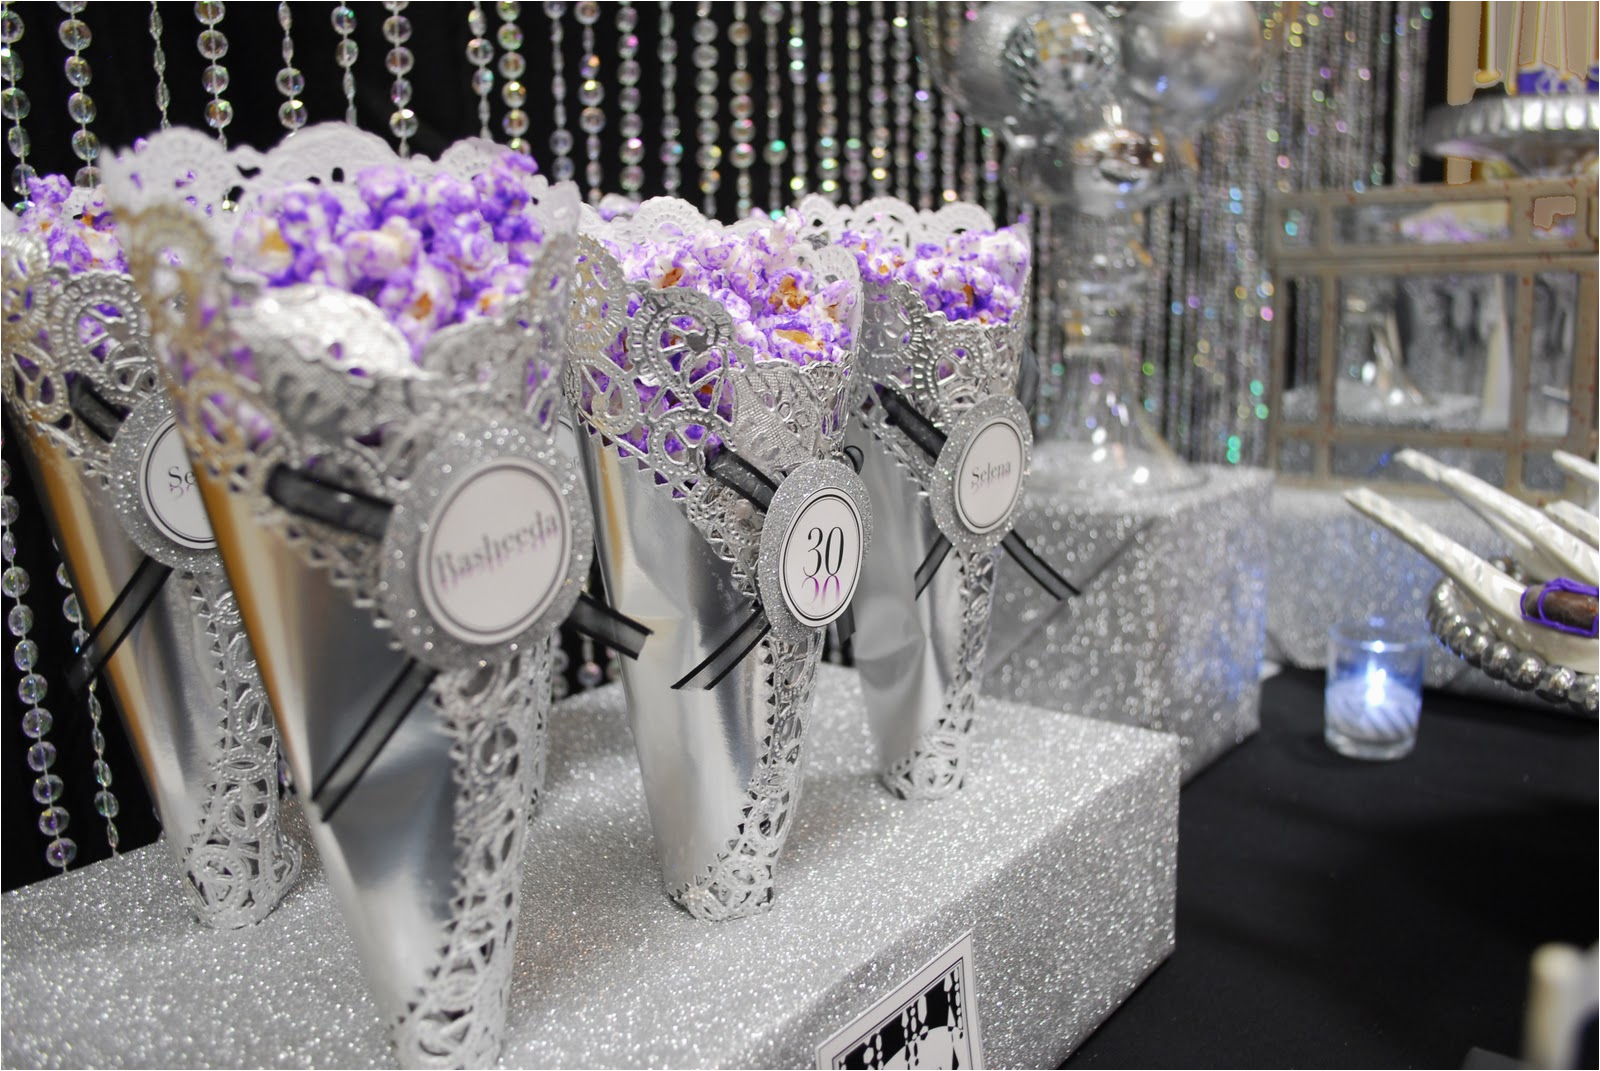 Purple and Silver Birthday Decorations the 30th Birthday Decorations Criolla Brithday Wedding